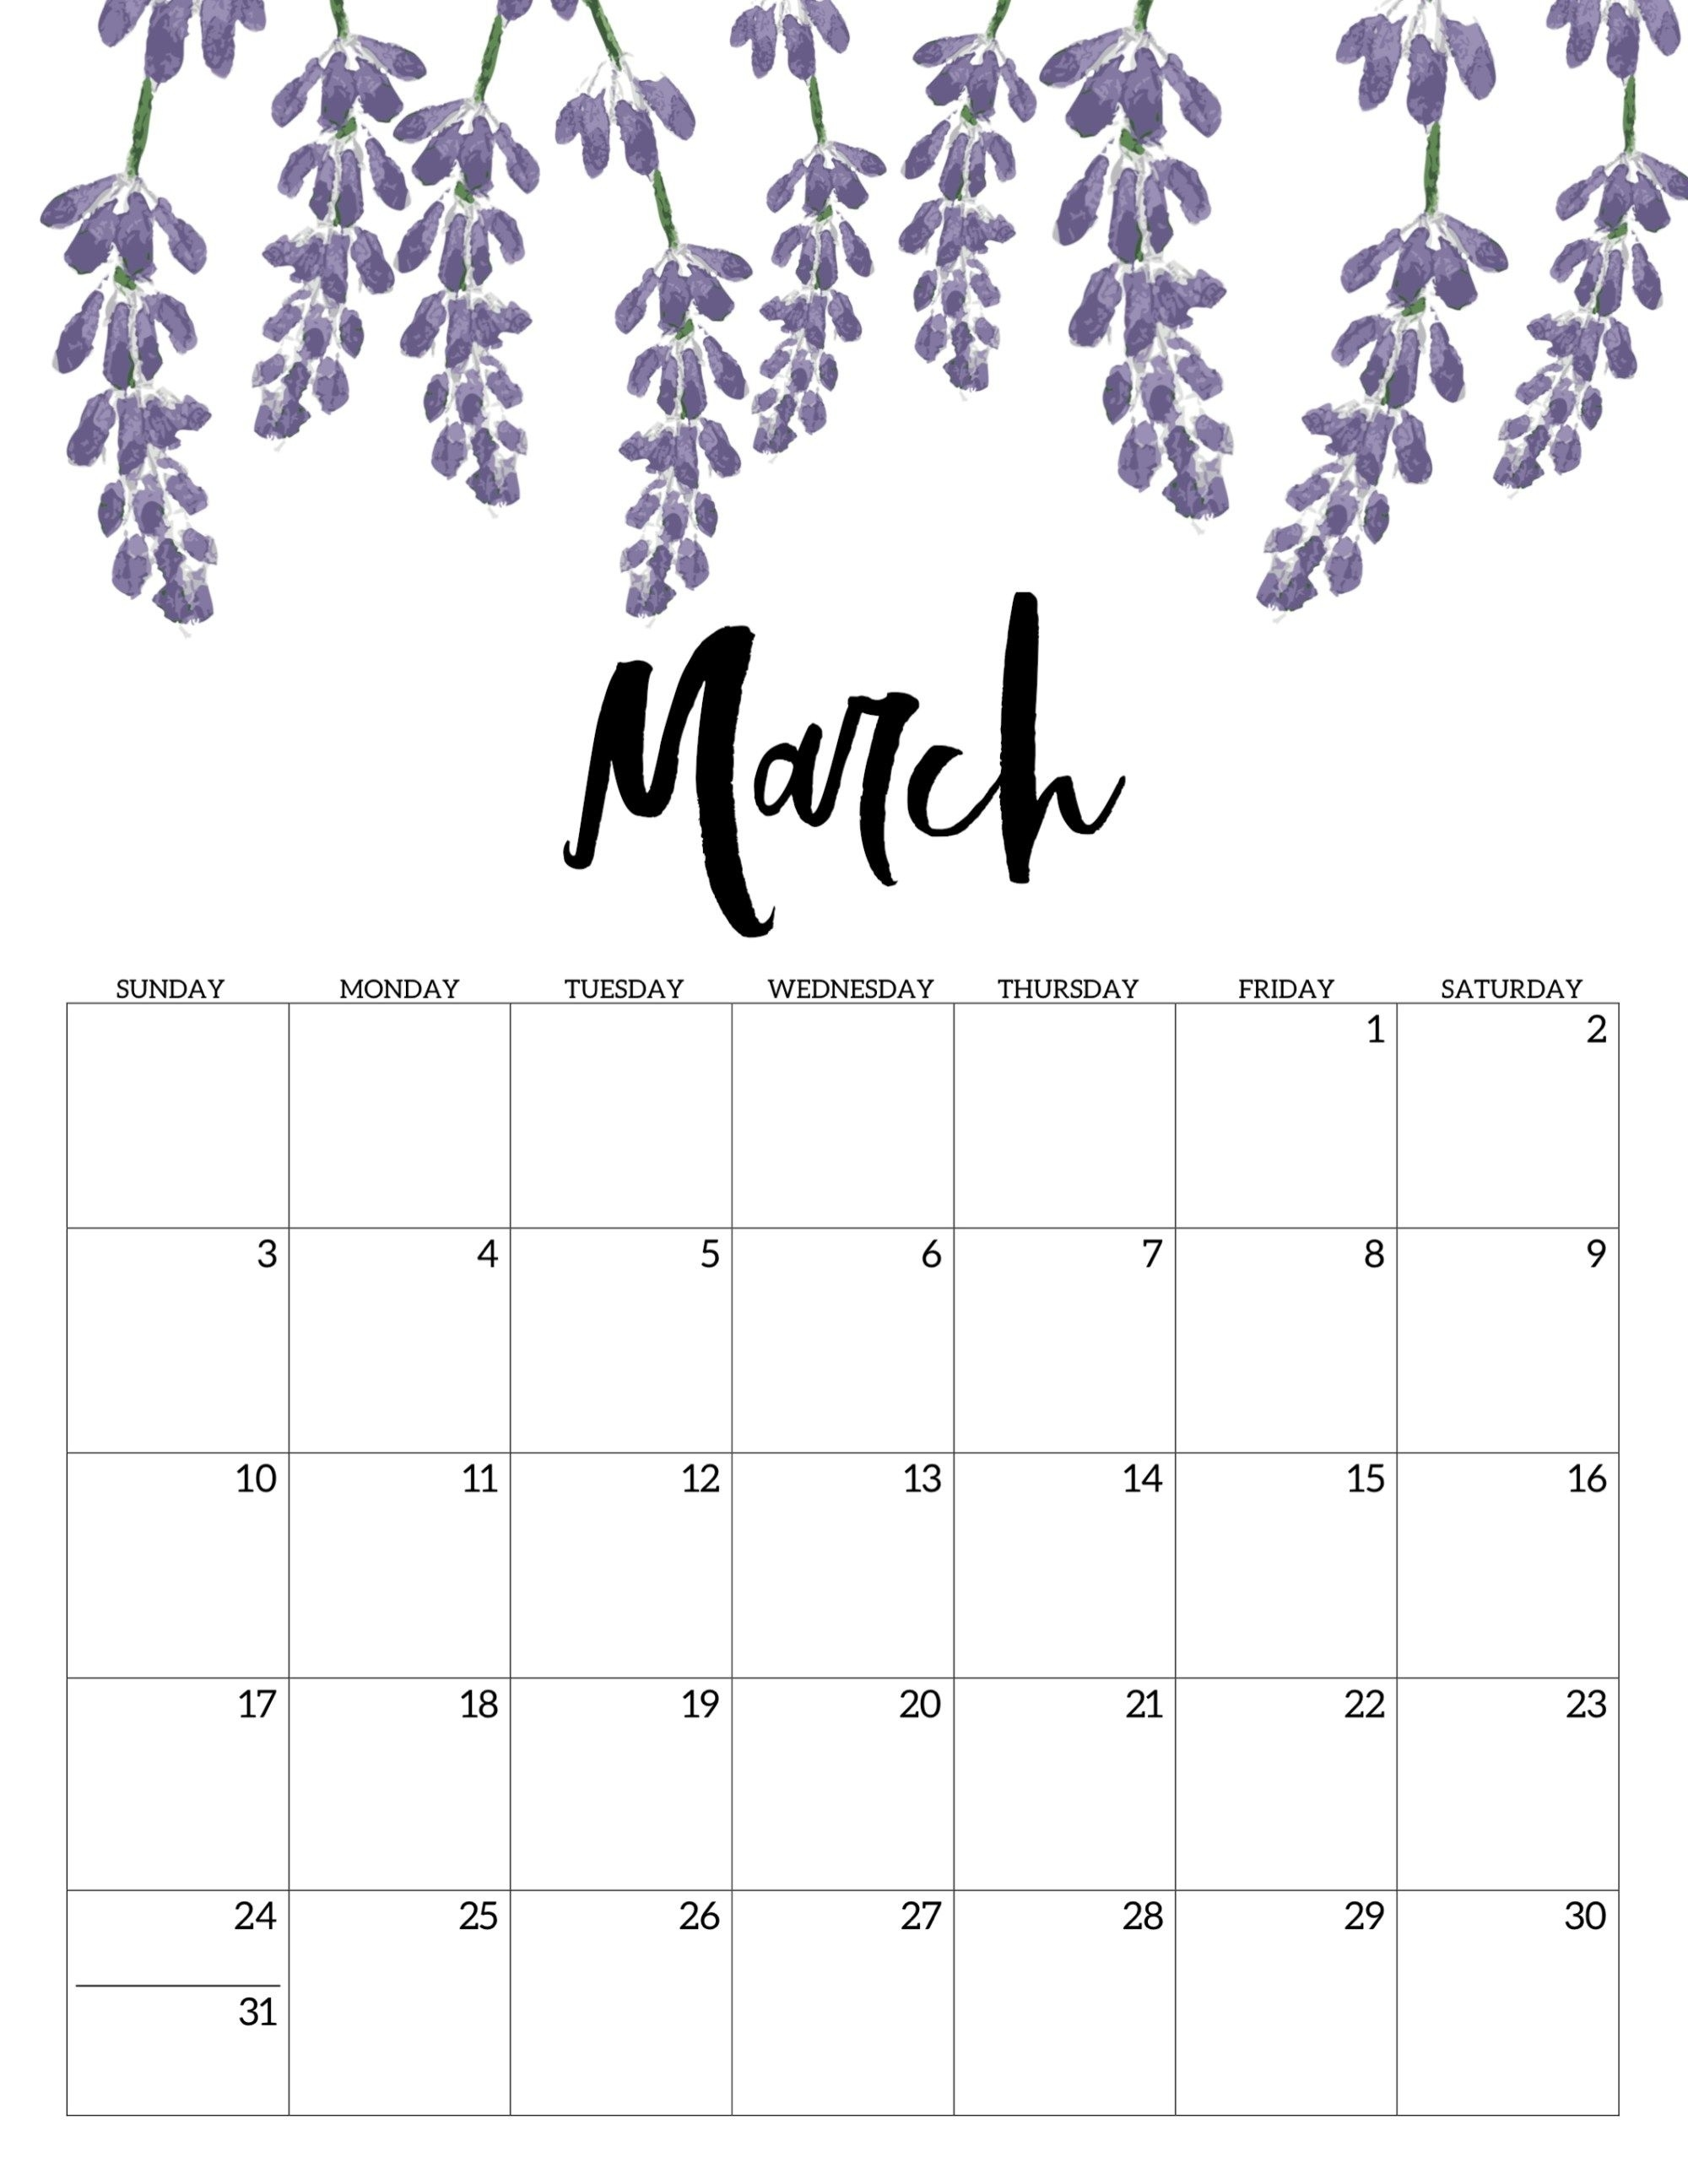 Free Printable Calendar 2019 - Floral | Study | Calendar, 2019 C Program To Print Calendar Of Month July